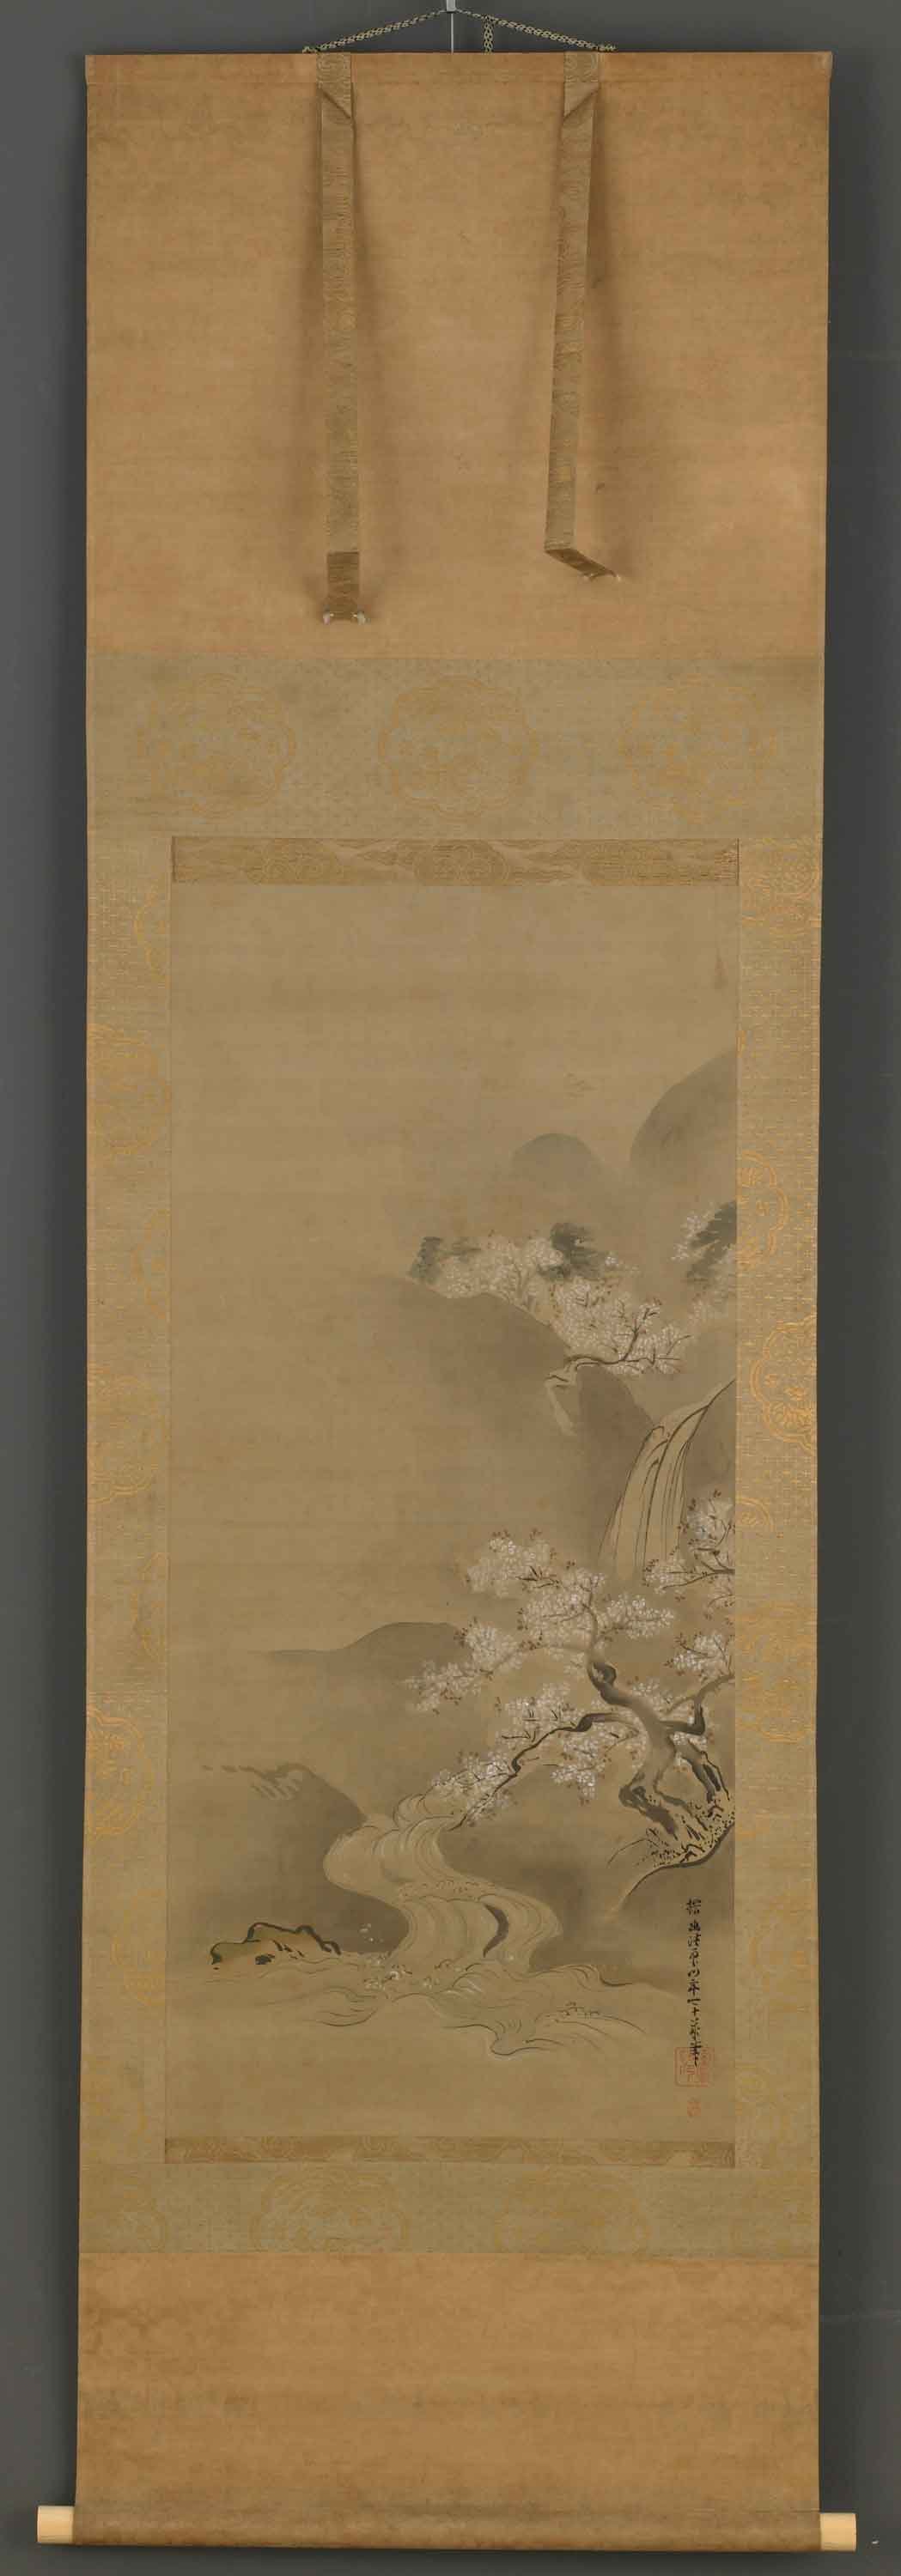 Honor the Tradition of Viewing Cherry Blossoms in These Signature Japanese Works of Art